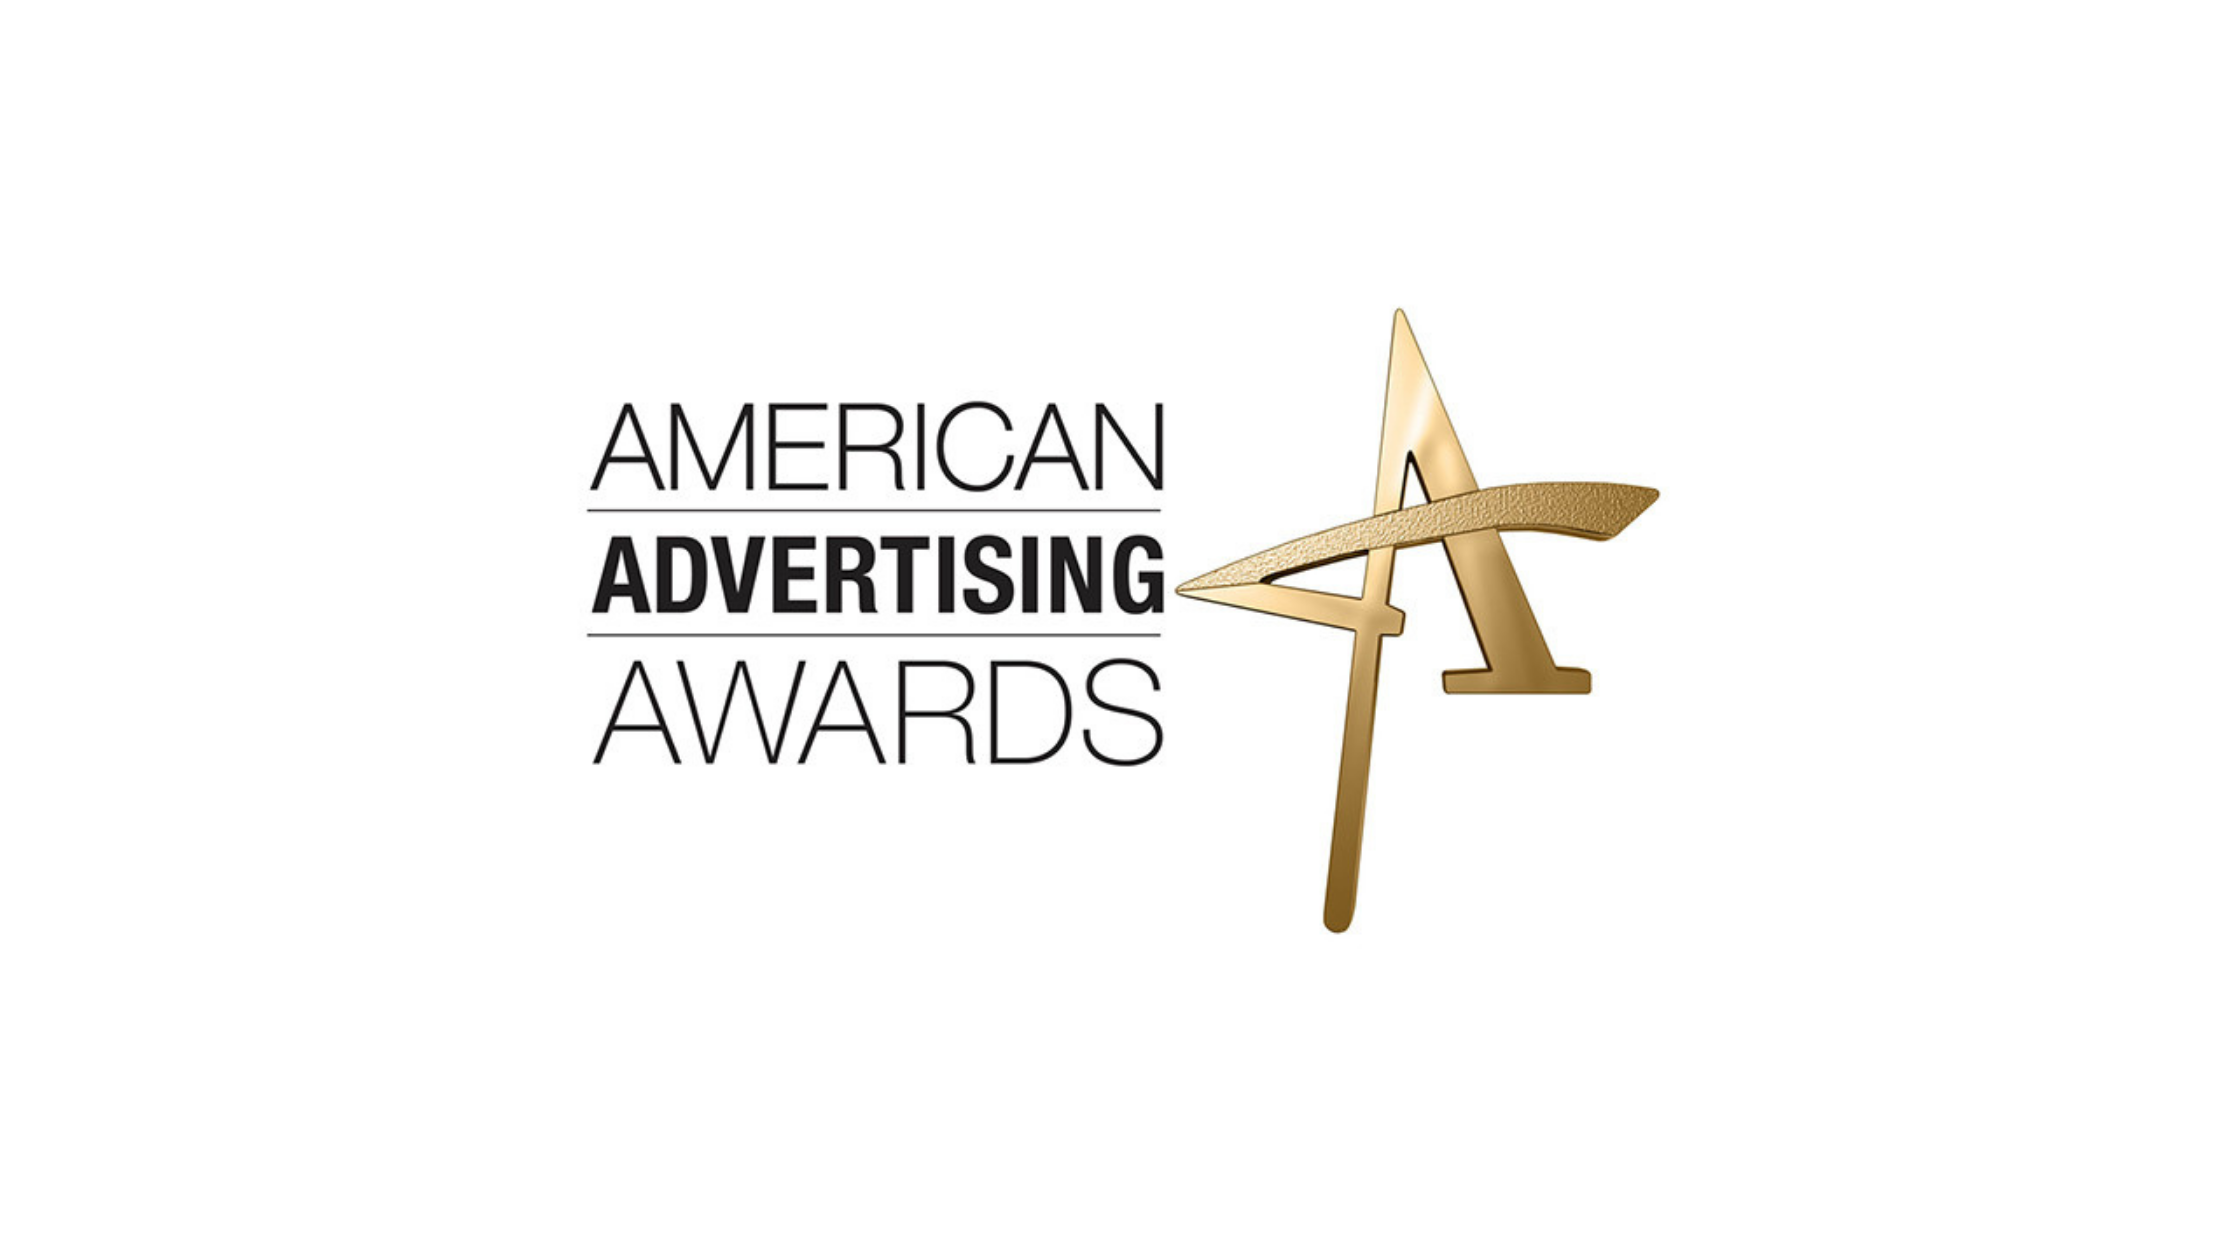 AAF-SWFL to honor the best in advertising creative